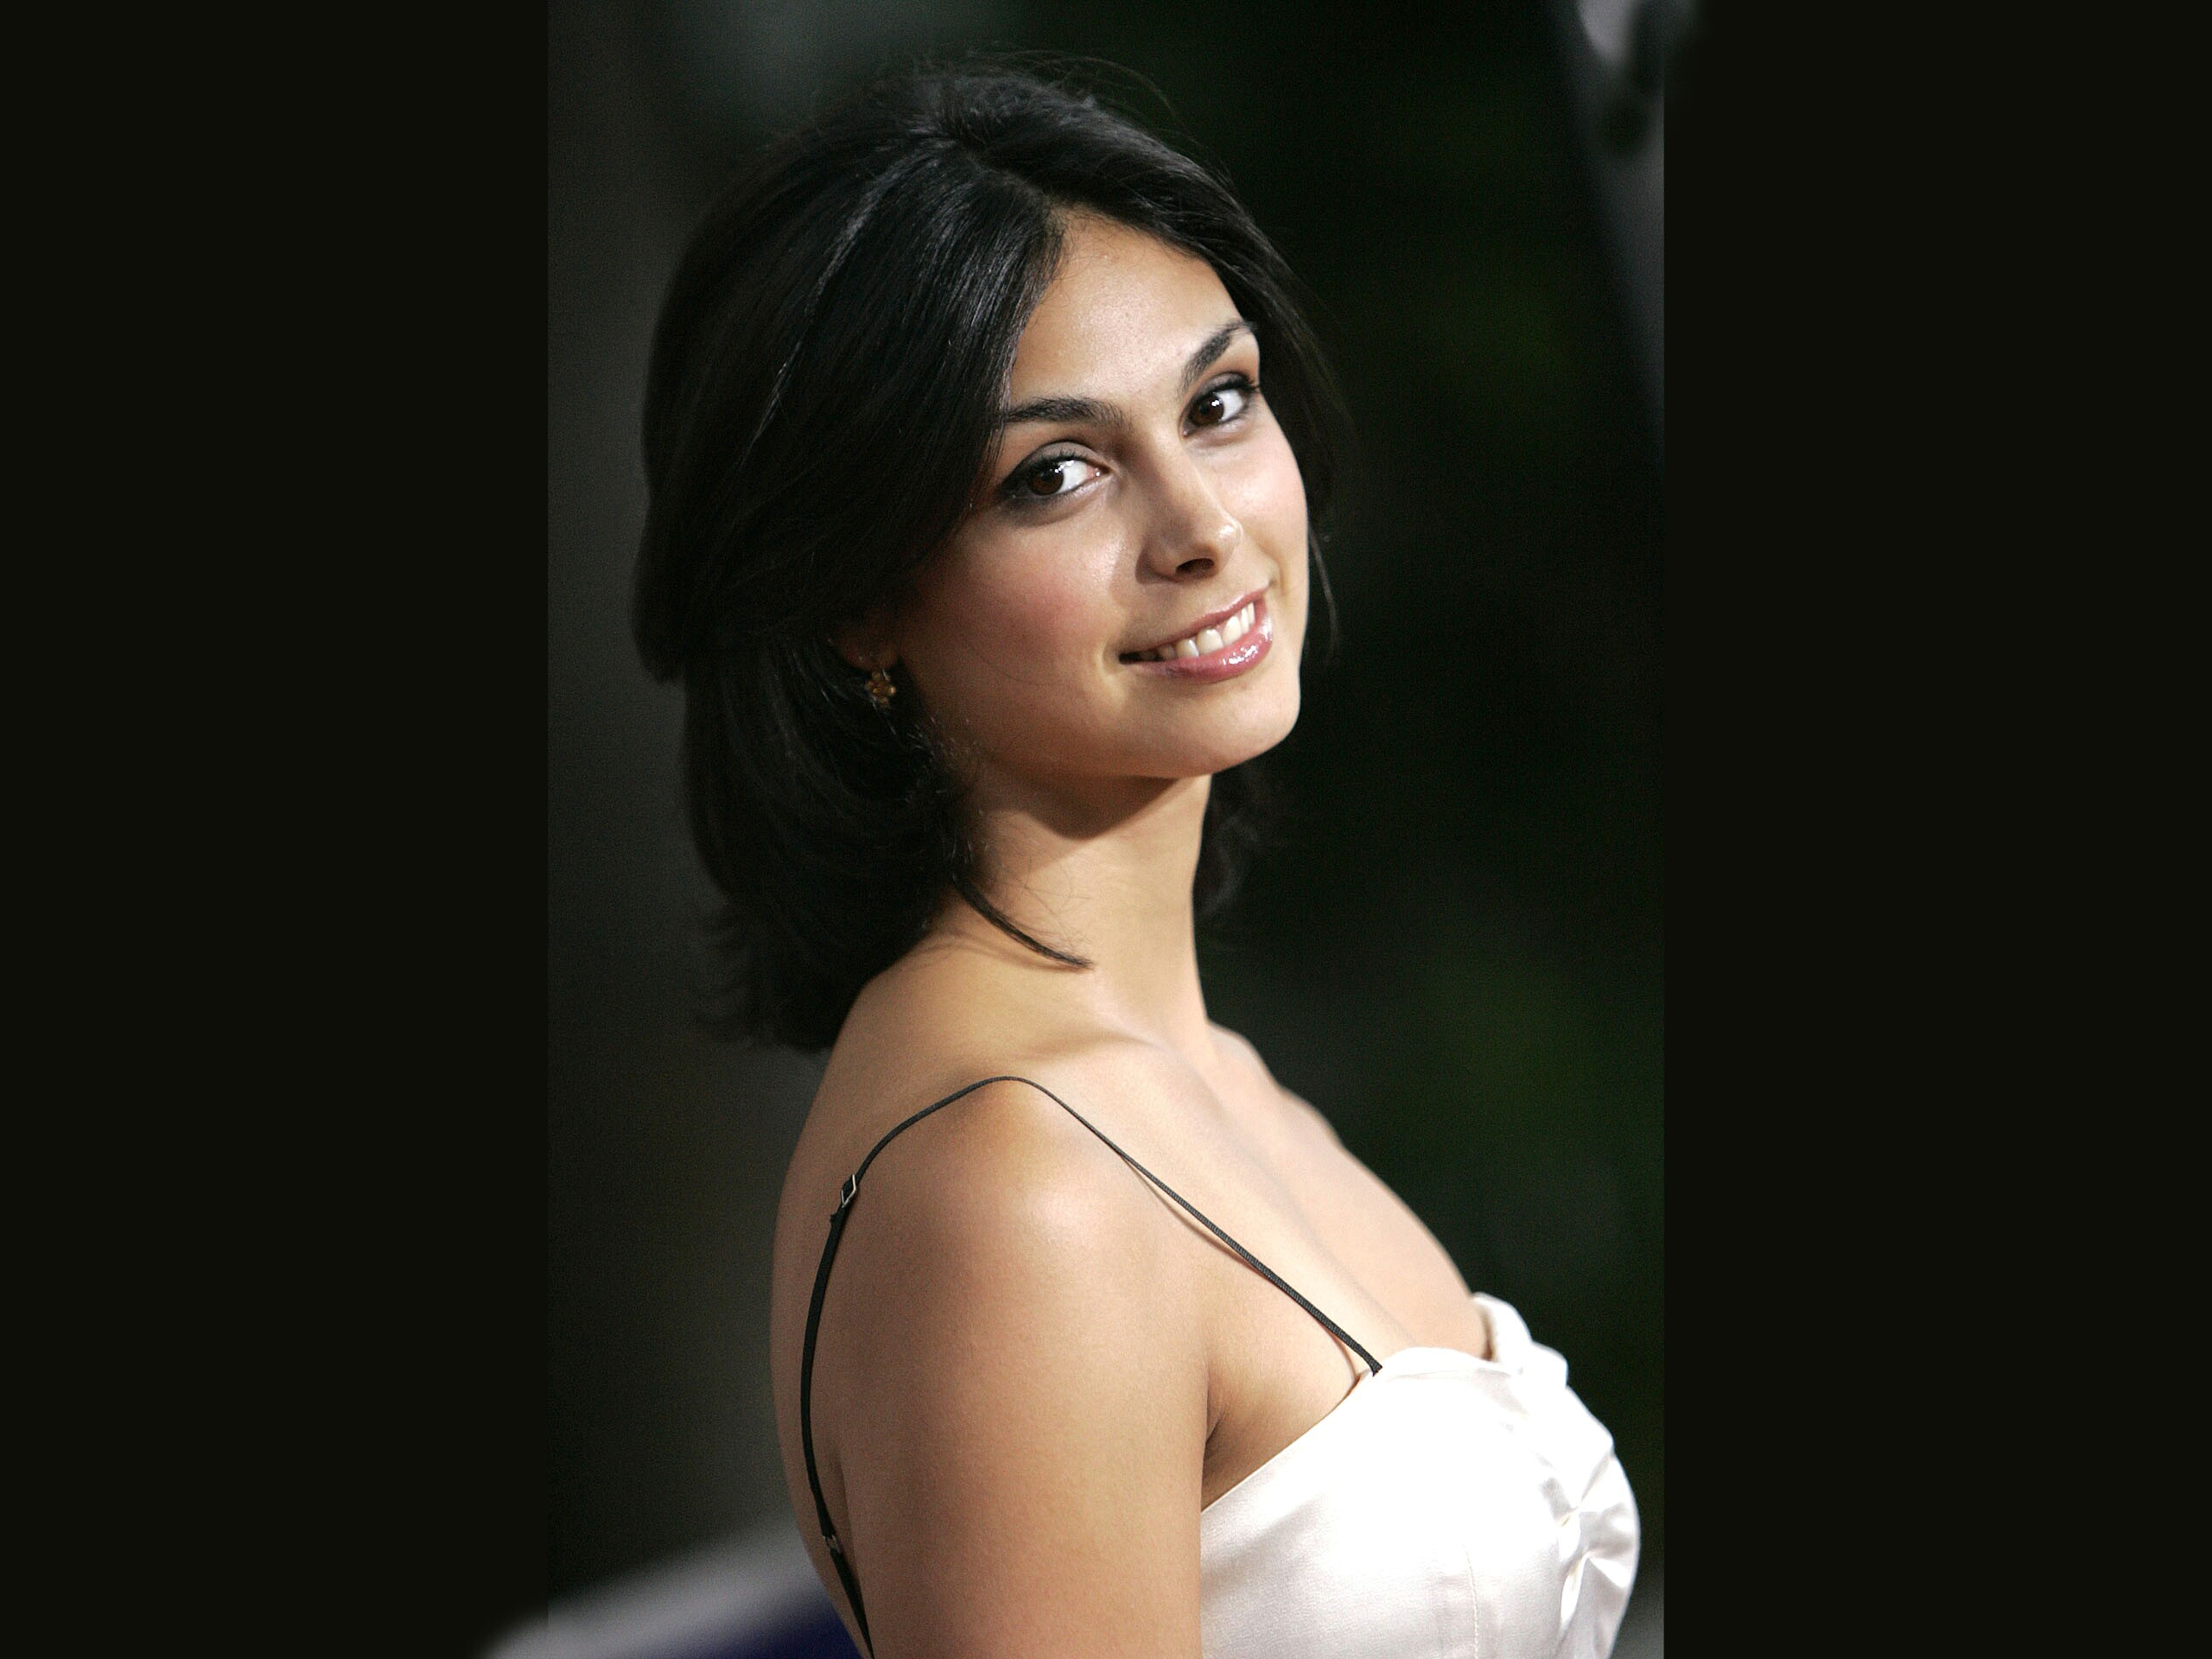 2560x1920 - Morena Baccarin Wallpapers 12